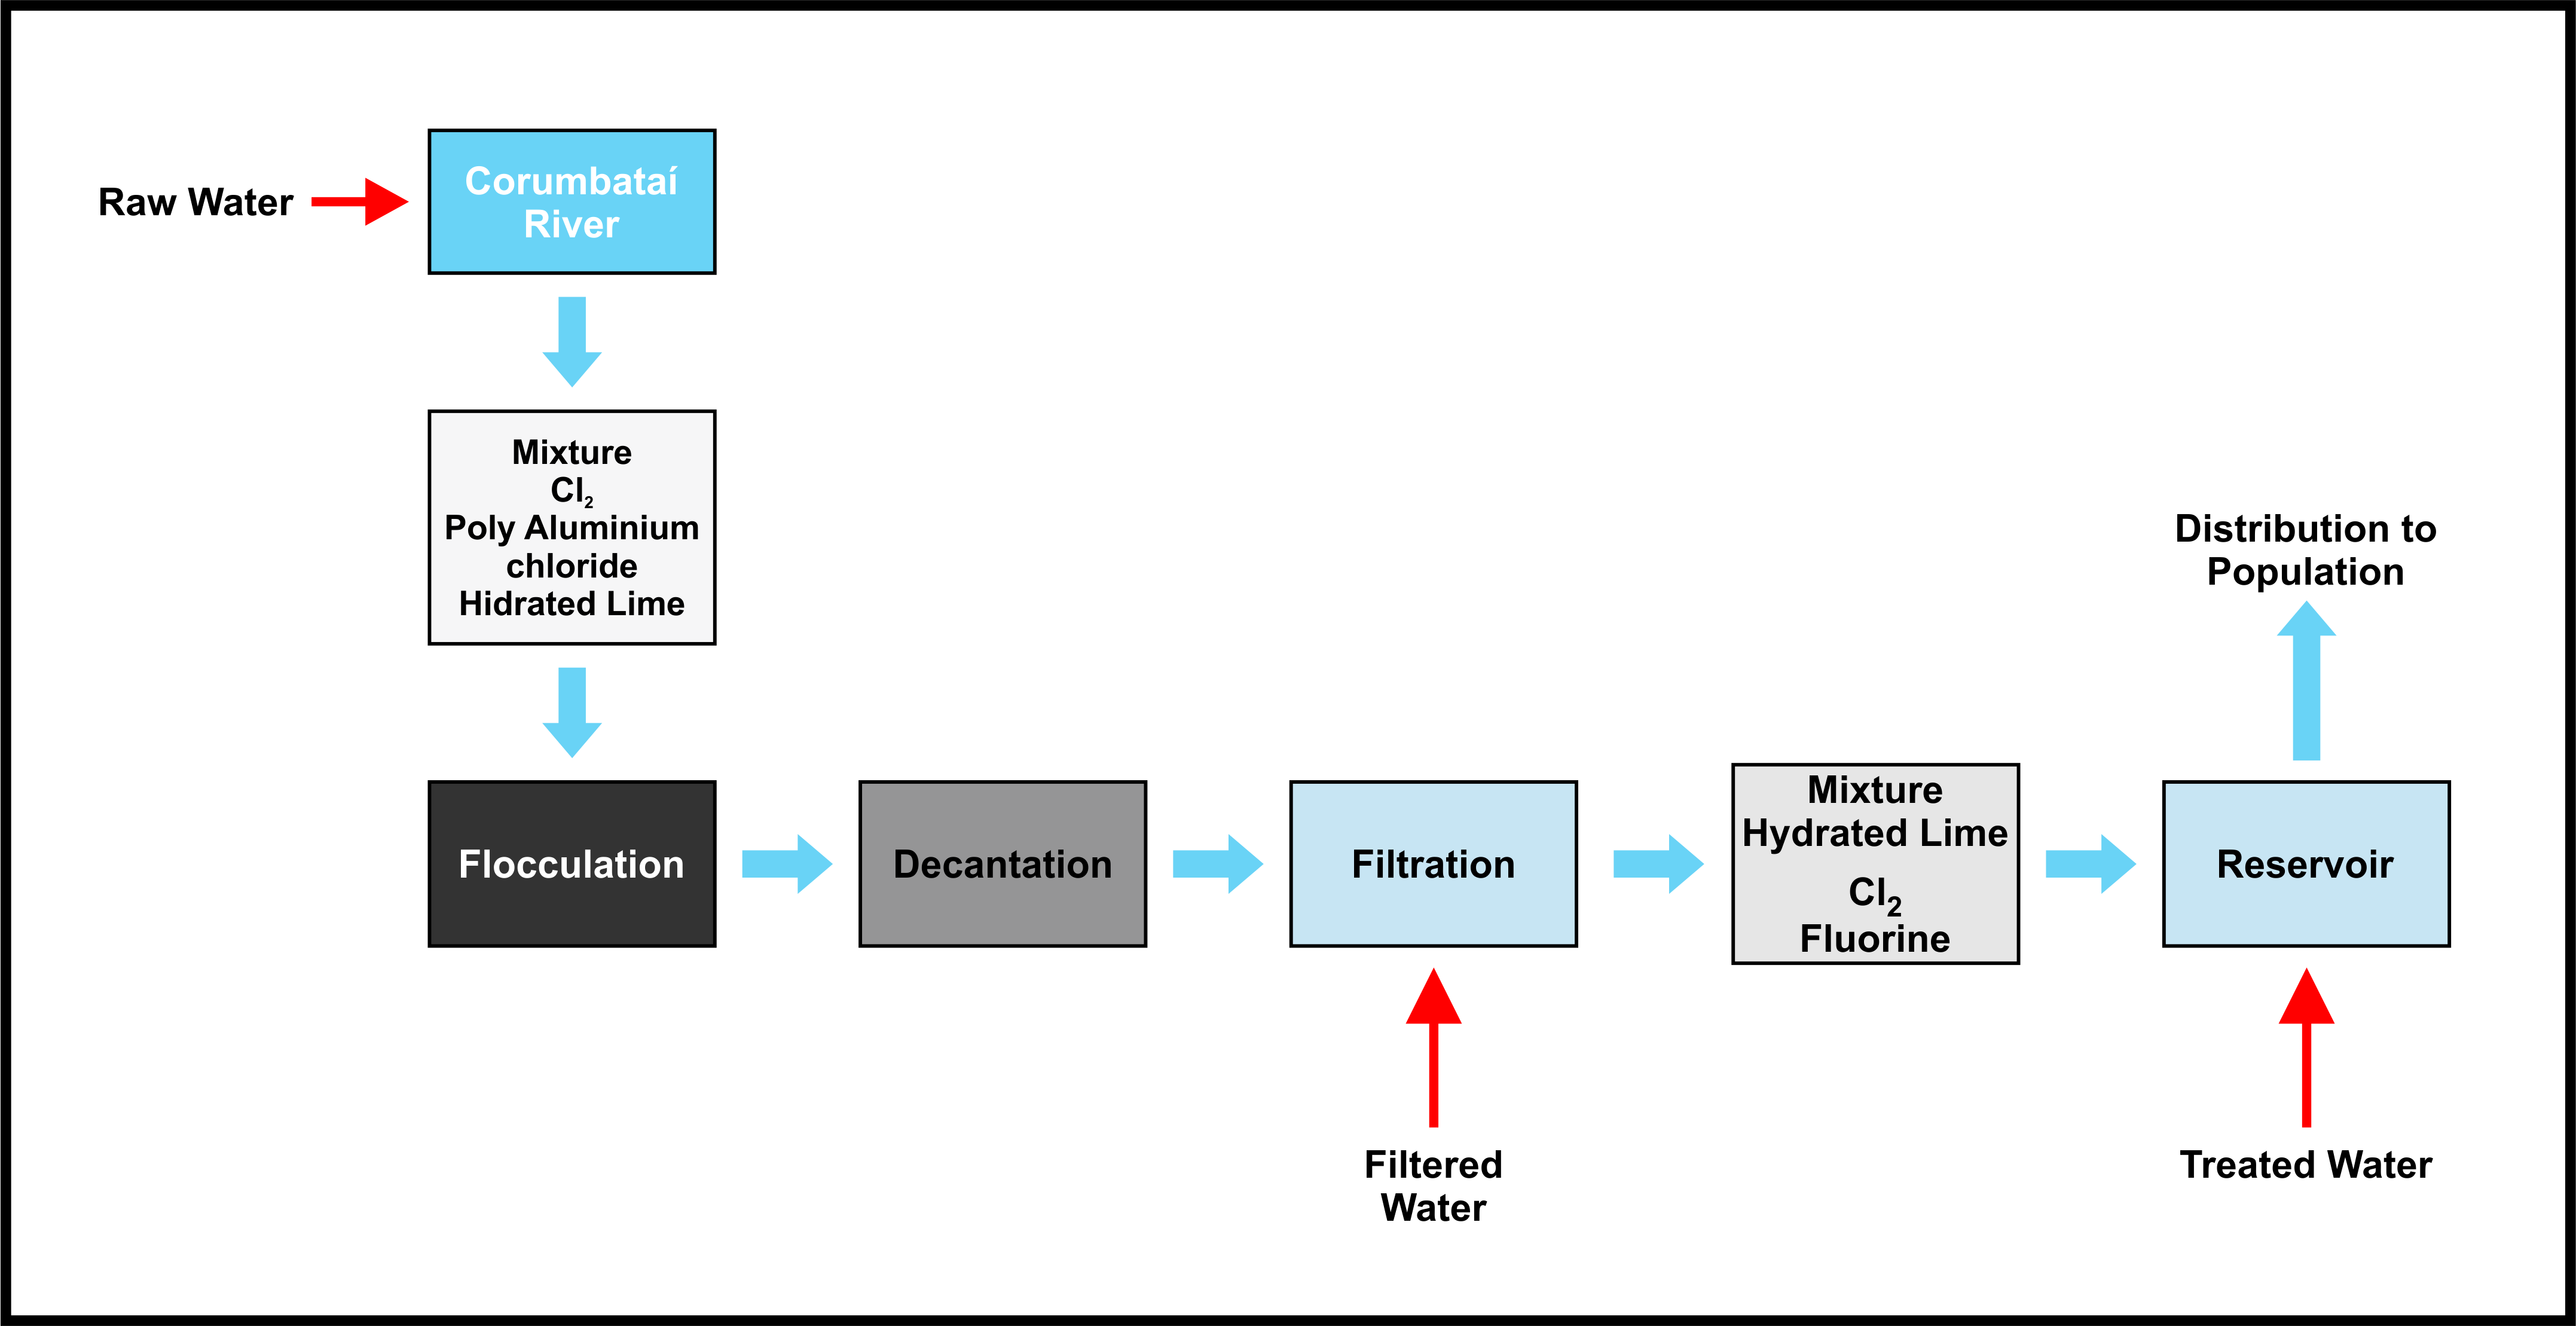 Process steps for the Water Treatment